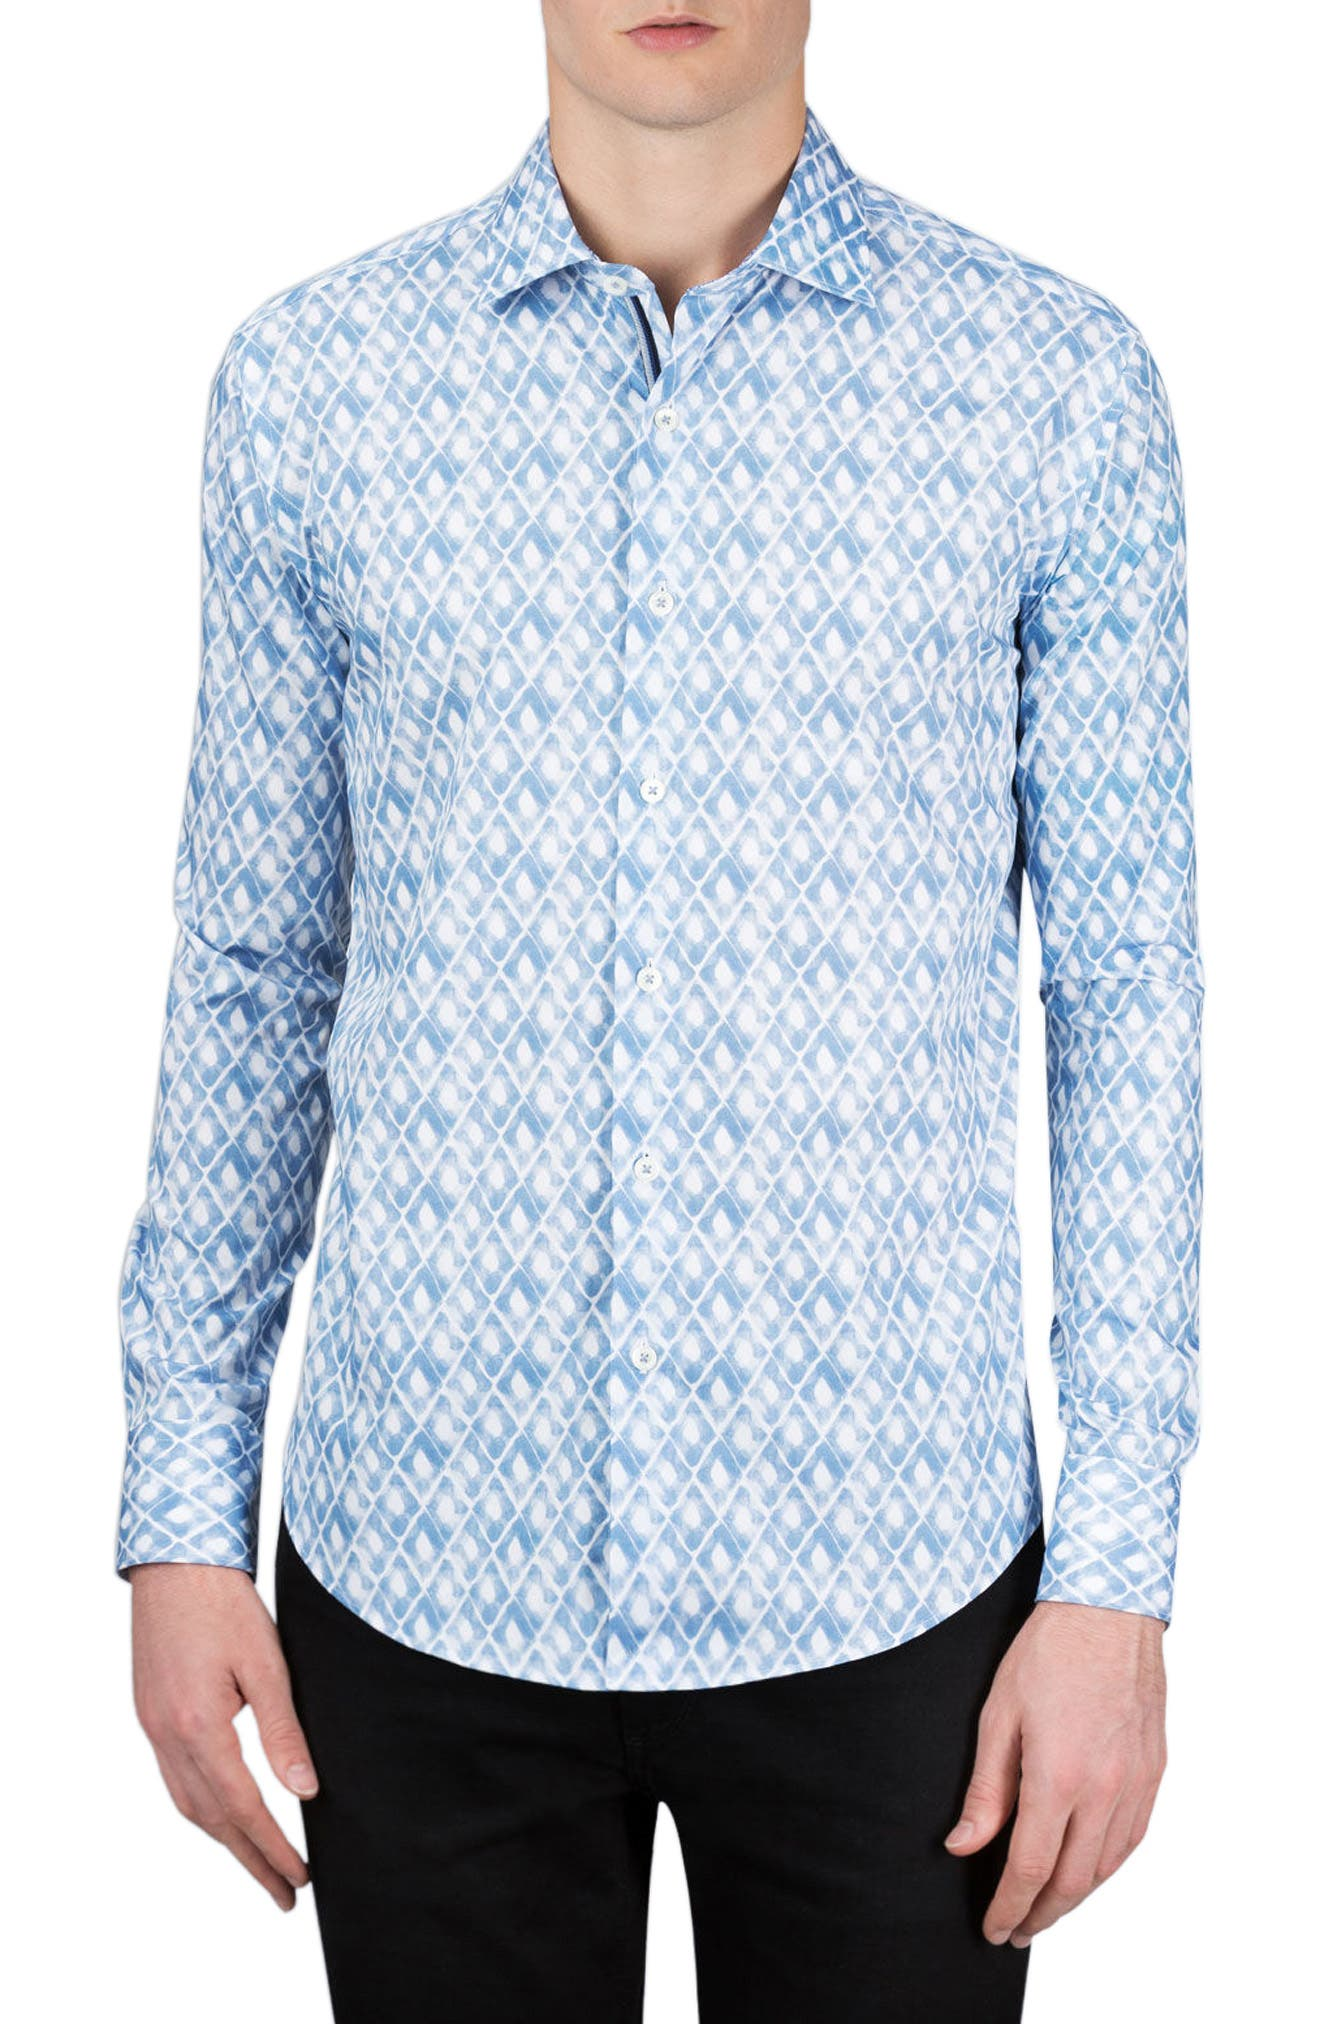 Alternate Image 1 Selected - Bugatchi Classic Fit Abstract Print Sport Shirt